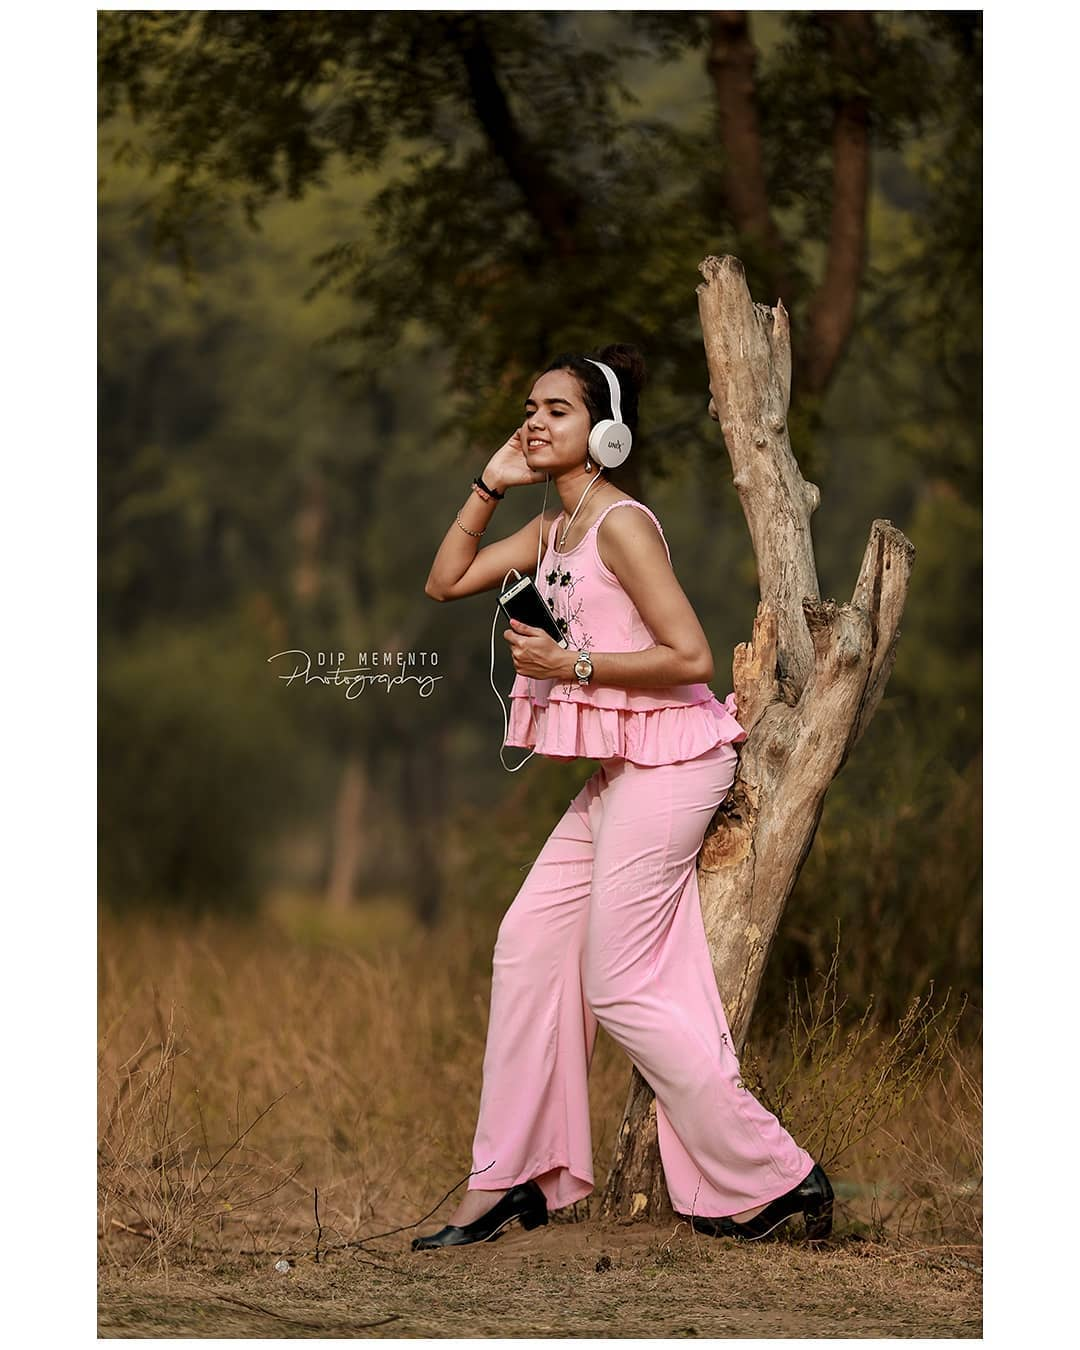 Music and Fashion; it all comes from the same place of creativity. . Portfolio shoot.. . In frame - Payal © @dip_memento_photography . Shoot With Canon 5d Mark iv + #Godox Hss  @canonindia_official @godox_photo_equipment @godoxusergroup  @canonindiaunofficial . . #indianportrait #dipmementophotography  #ahmedabadphotographer #modelshoot #fashion #ahmedabad  #fashionphotography  #yourshot_india #9924227745 #mypixeldiary #indiaportraits #dipmementophotography  #indianphotography #indiapictures  #blogphotography  #portraitphotography #portrait_perfection #portraitpage #portrait_vision #portrait_shots #portrait_ig  #portraits_ig #portrait_mood  #portraitgames #portrait_star #top_portraits #portraitvision #discoverportrait